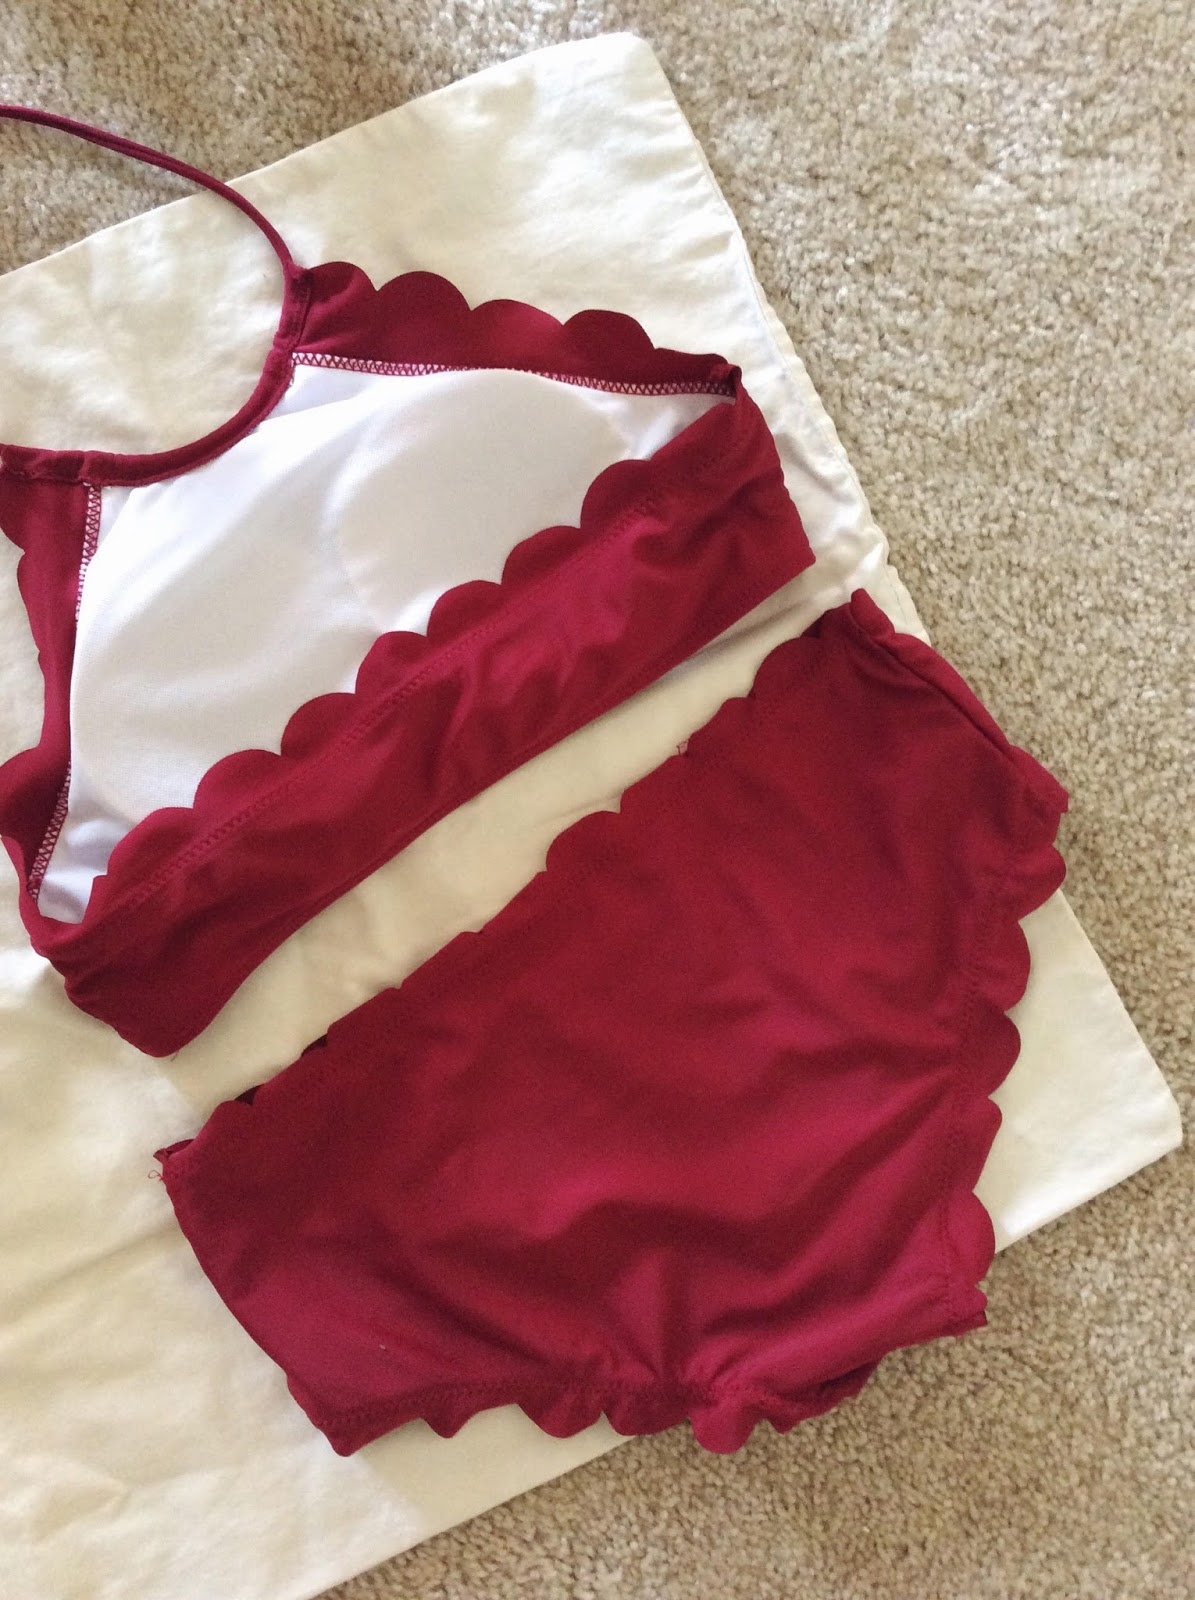 zaful swimsuit review